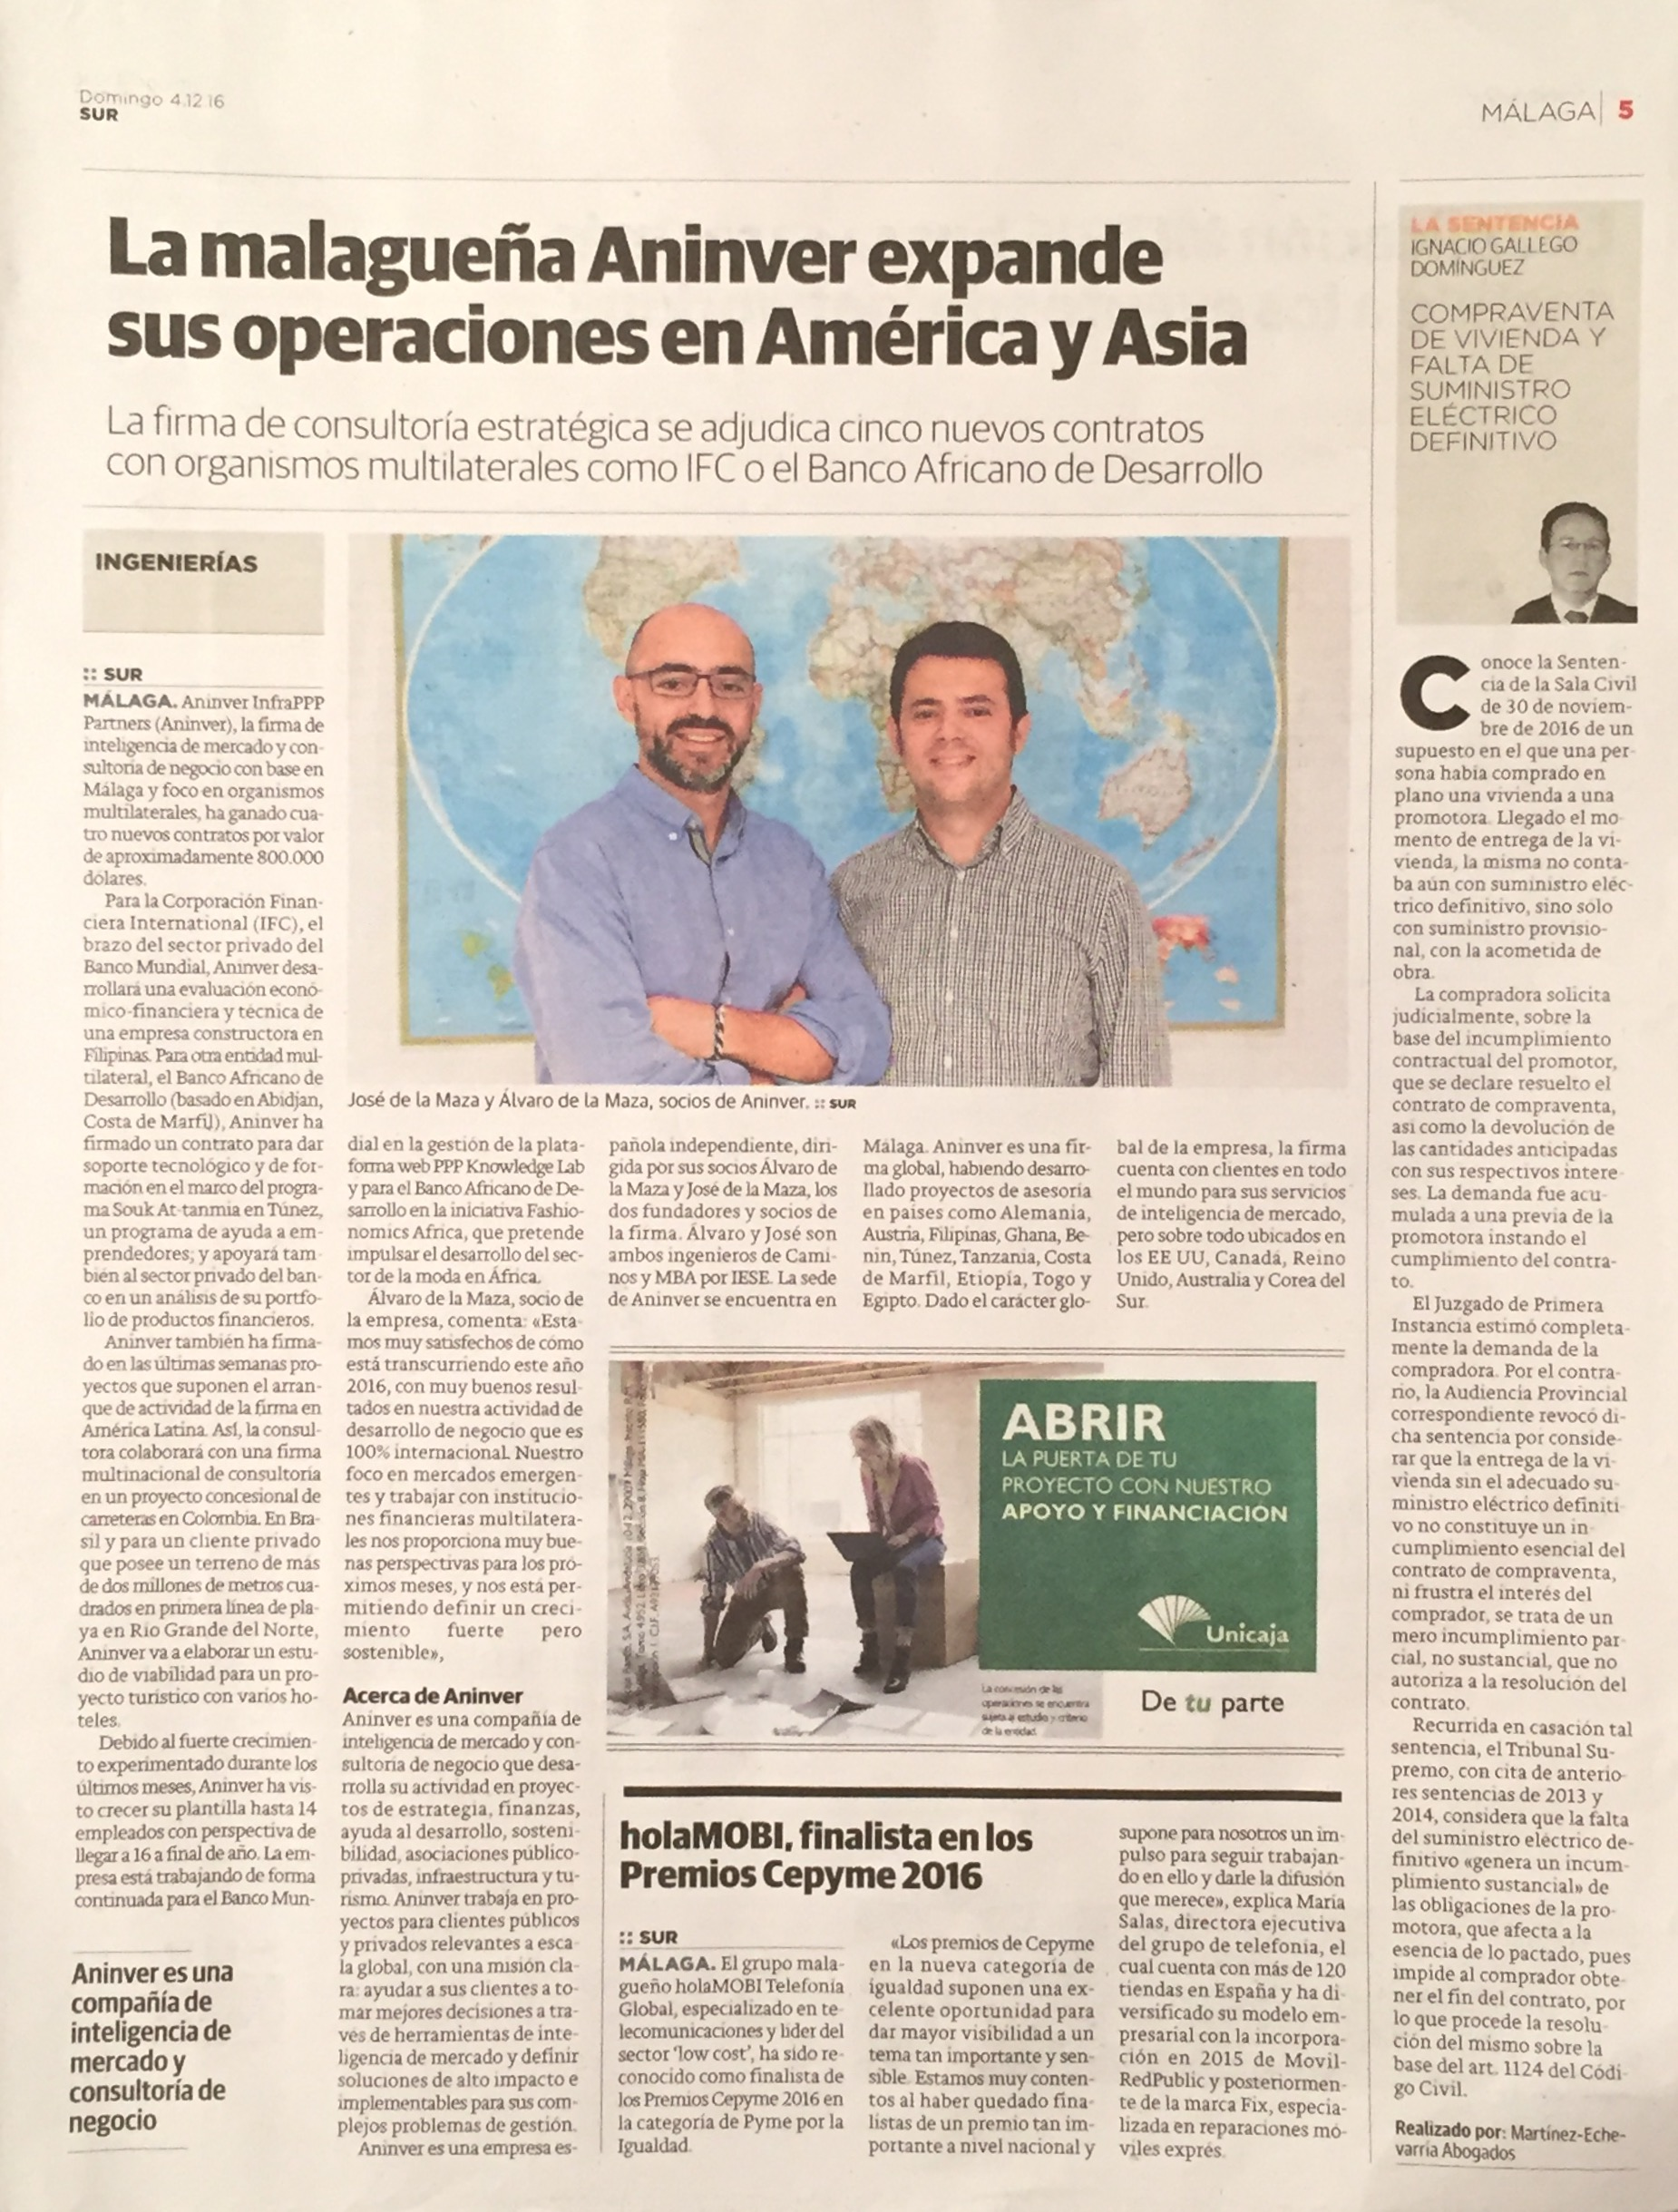 Diario Sur publishes about Aninver